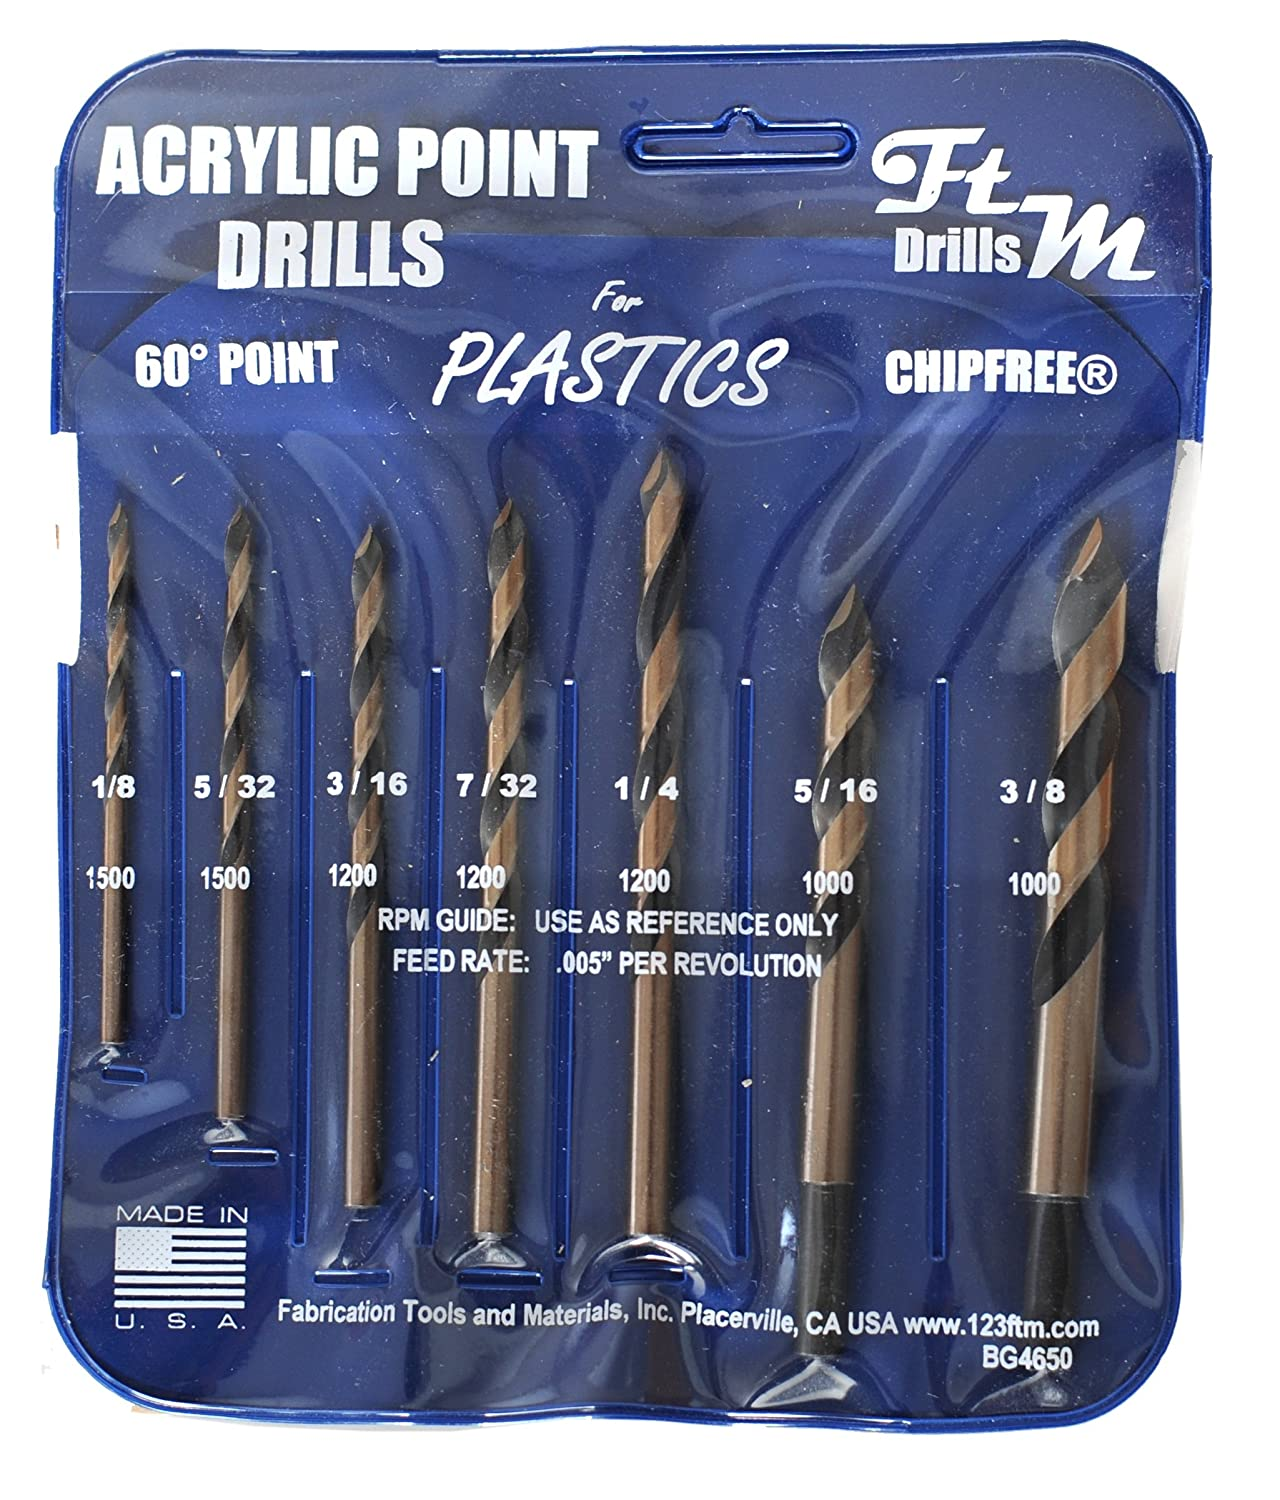 5//16 acrylic, plexiglass, ABS, lexan, polycarbonate, pvc Drill Bits for Plastic and 3//8 Part BG4650A Norseman 7pc Acrylic Point Drill Set in Vinyl Pouch Includes 1//8 3//16 7//32 1//4 5//32